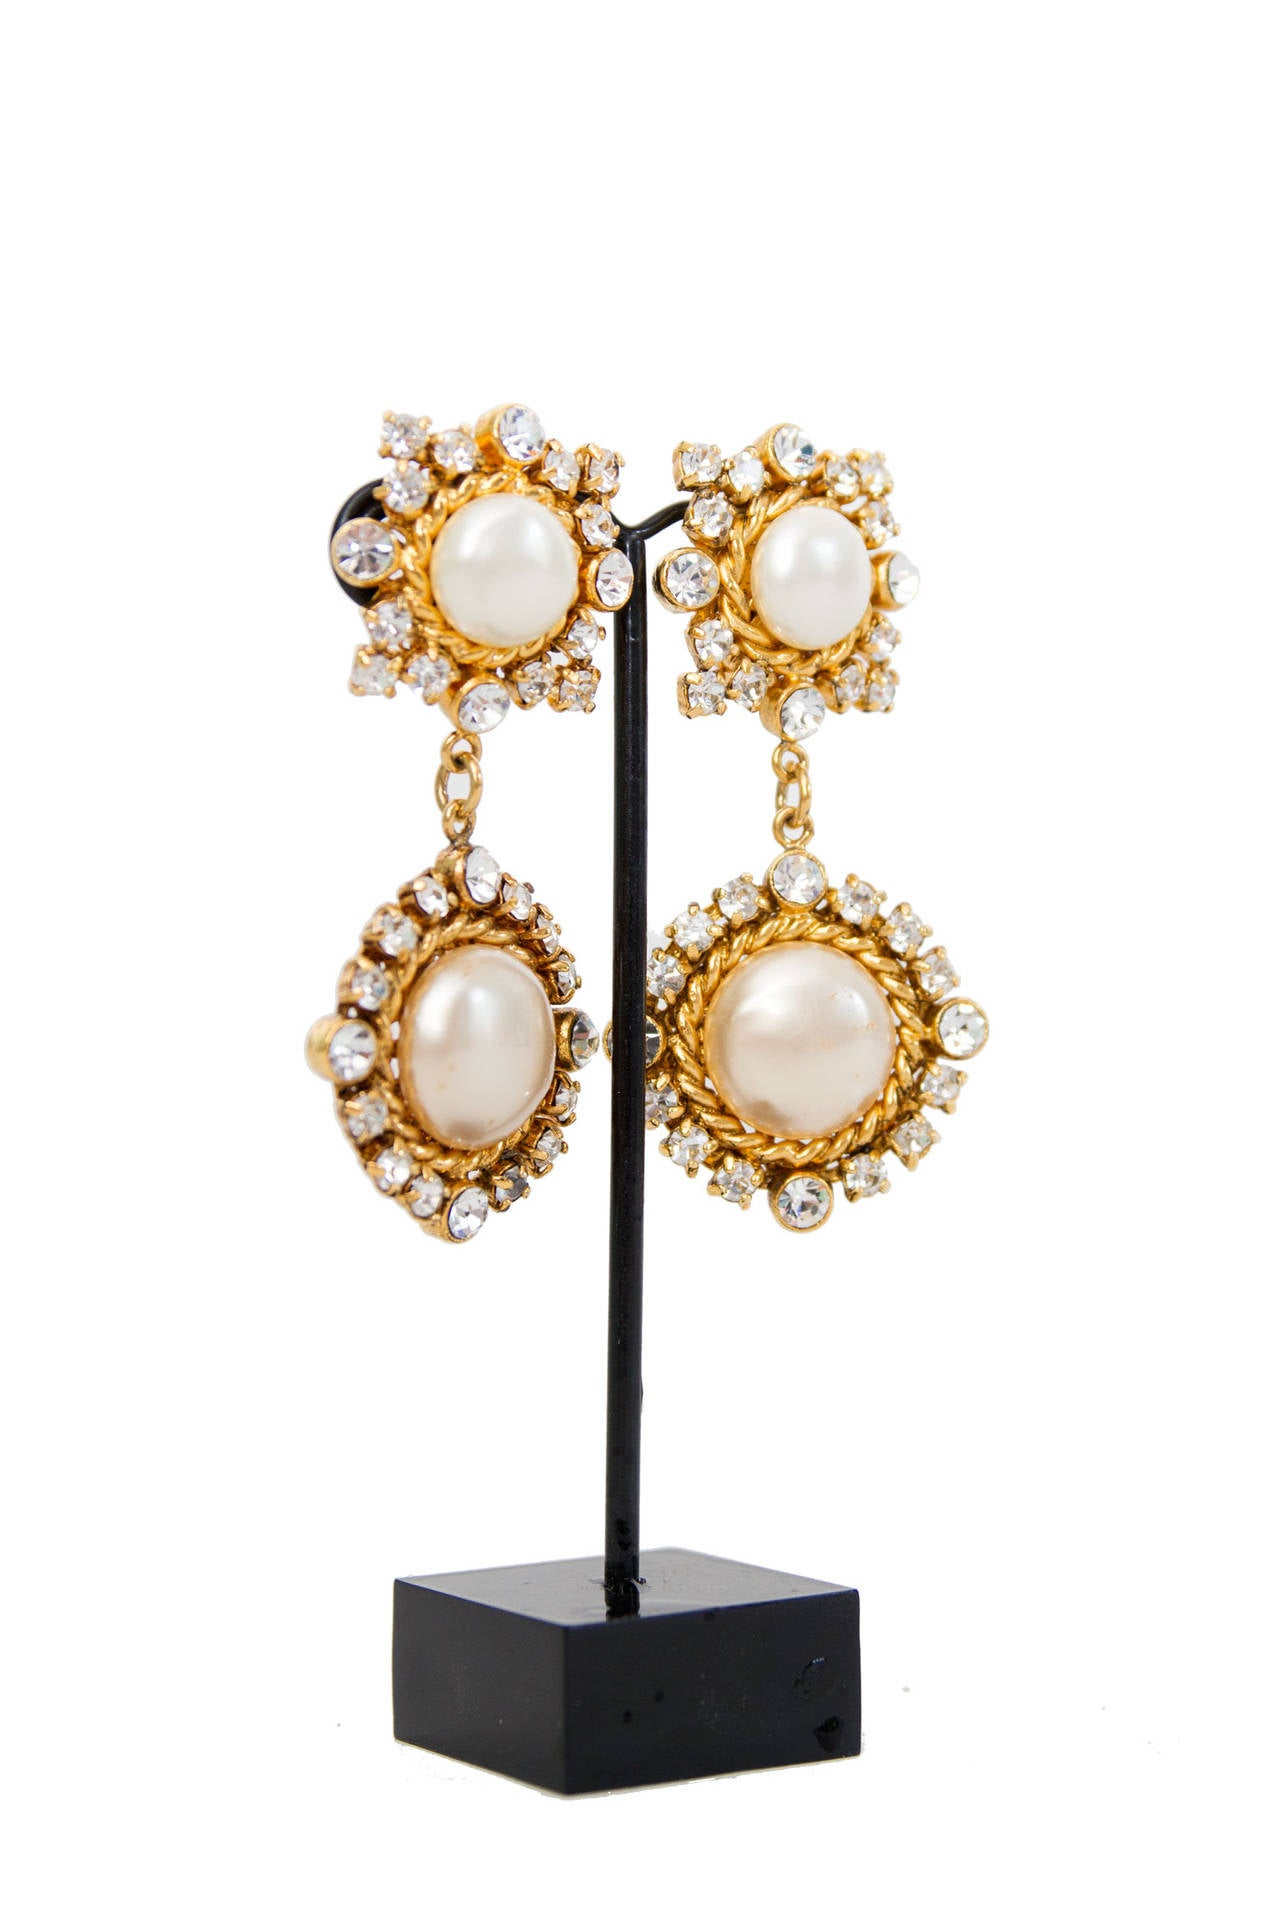 Glamorous 1980s Chanel Mother-of-Pearl Drop Earrings 2